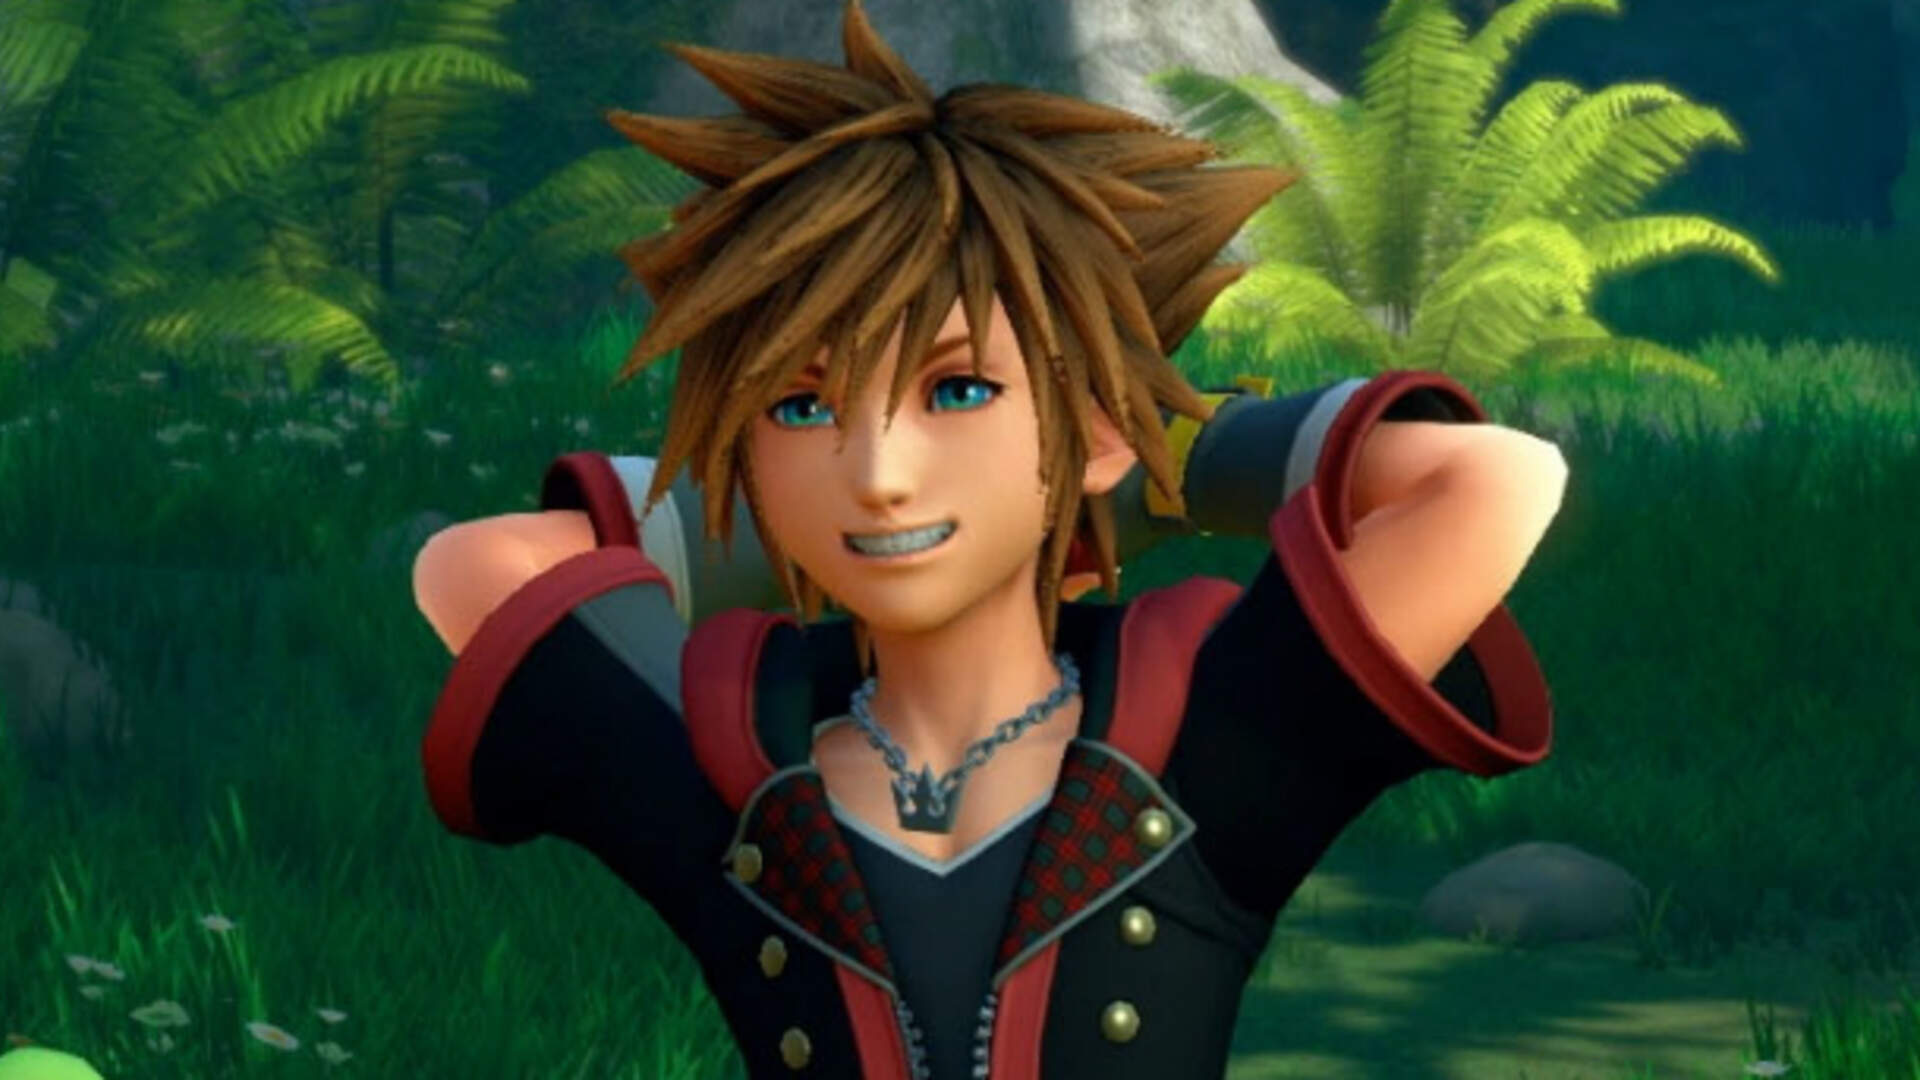 Kingdom Hearts 3 is Coming Out in 2019